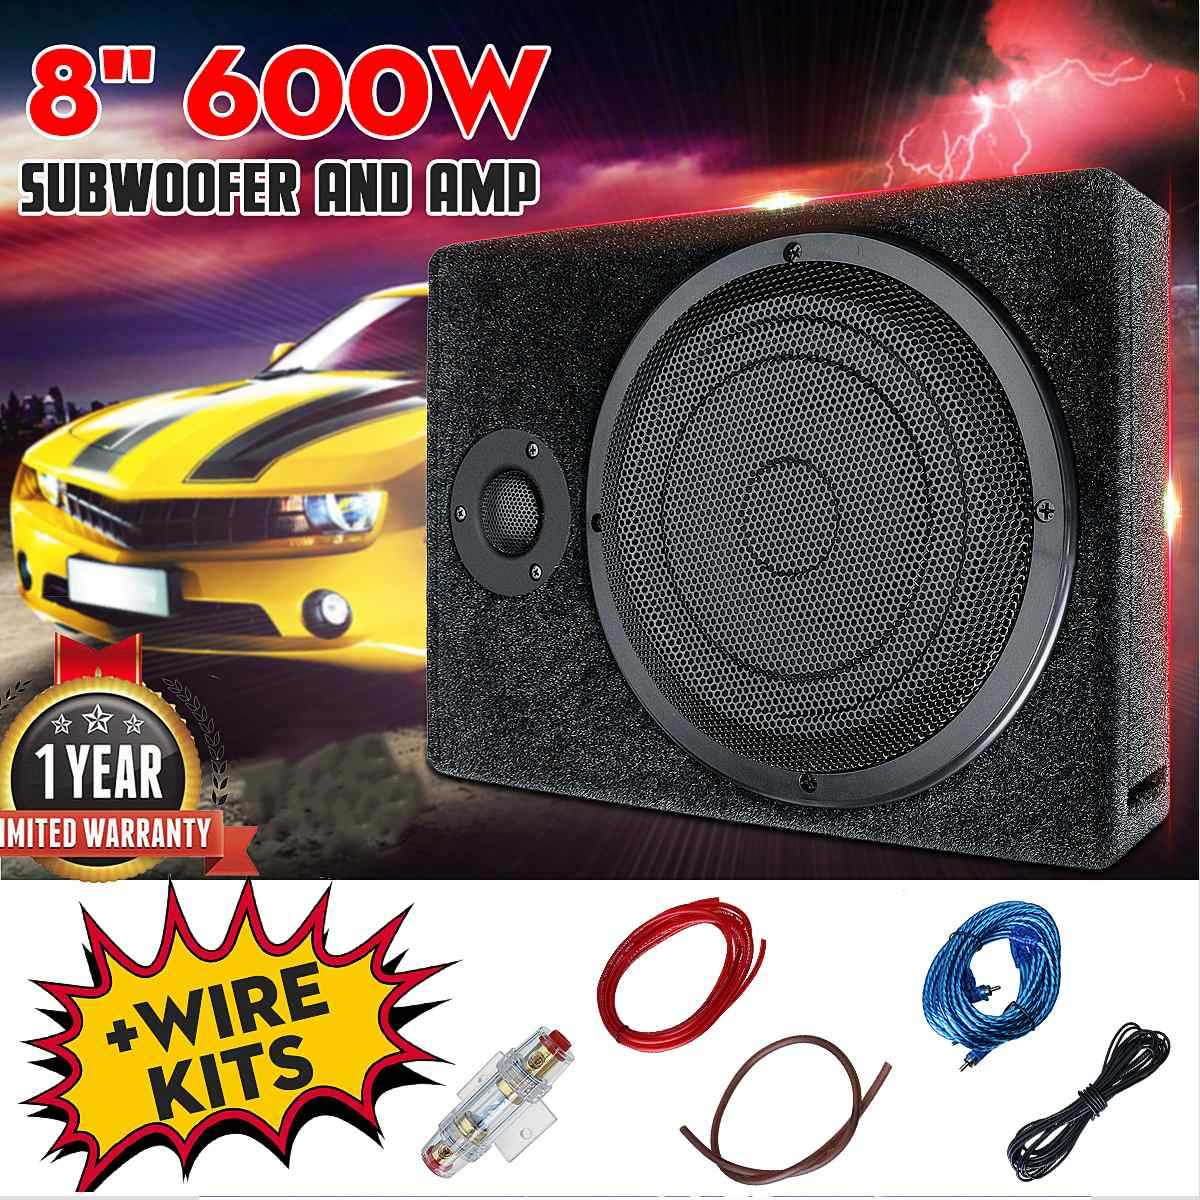 600W 8 Inch DC 12V Car Amplifier Audio Stereo Bass Speaker Car Audio Amplifiers Subwoofer Car Audio Amplifiers With Wire Kit